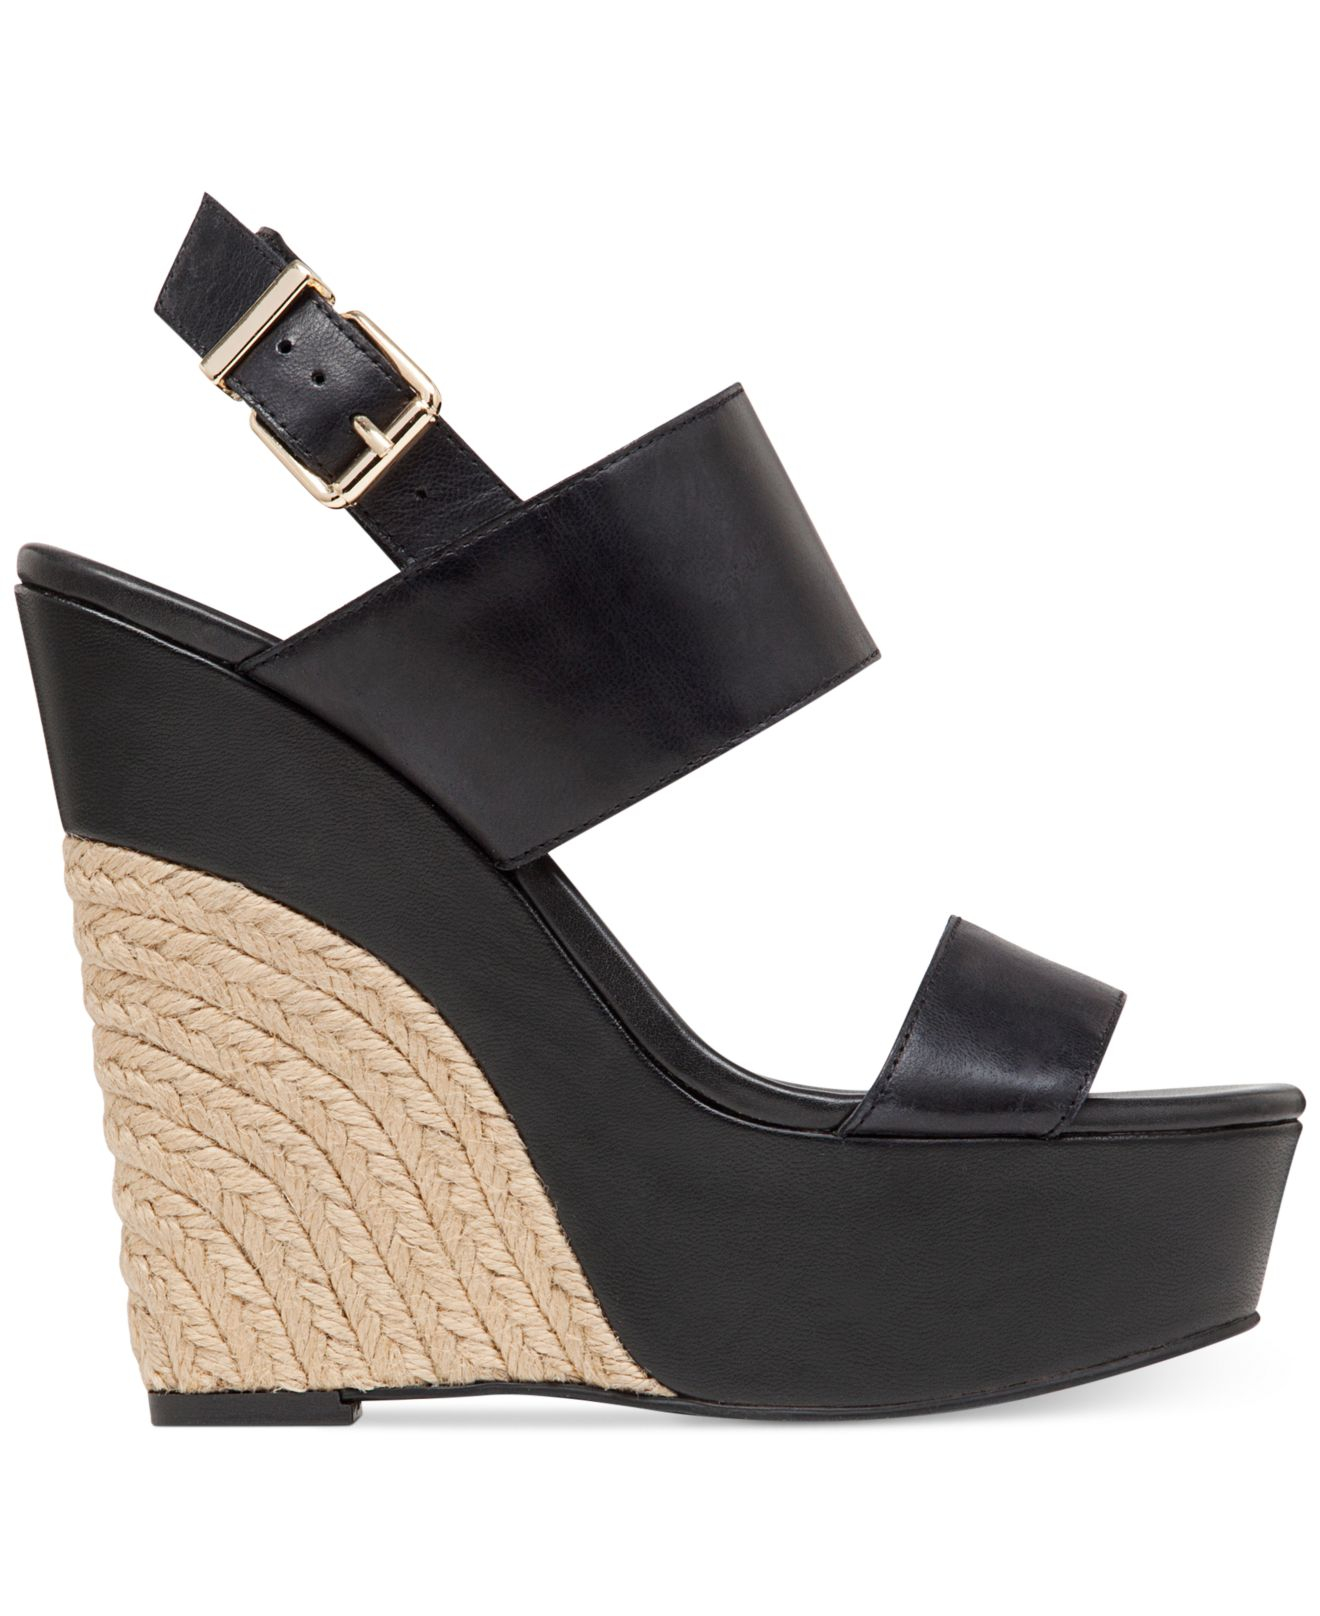 Jessica Simpson Anika Espadrille Platform Wedge Sandals In